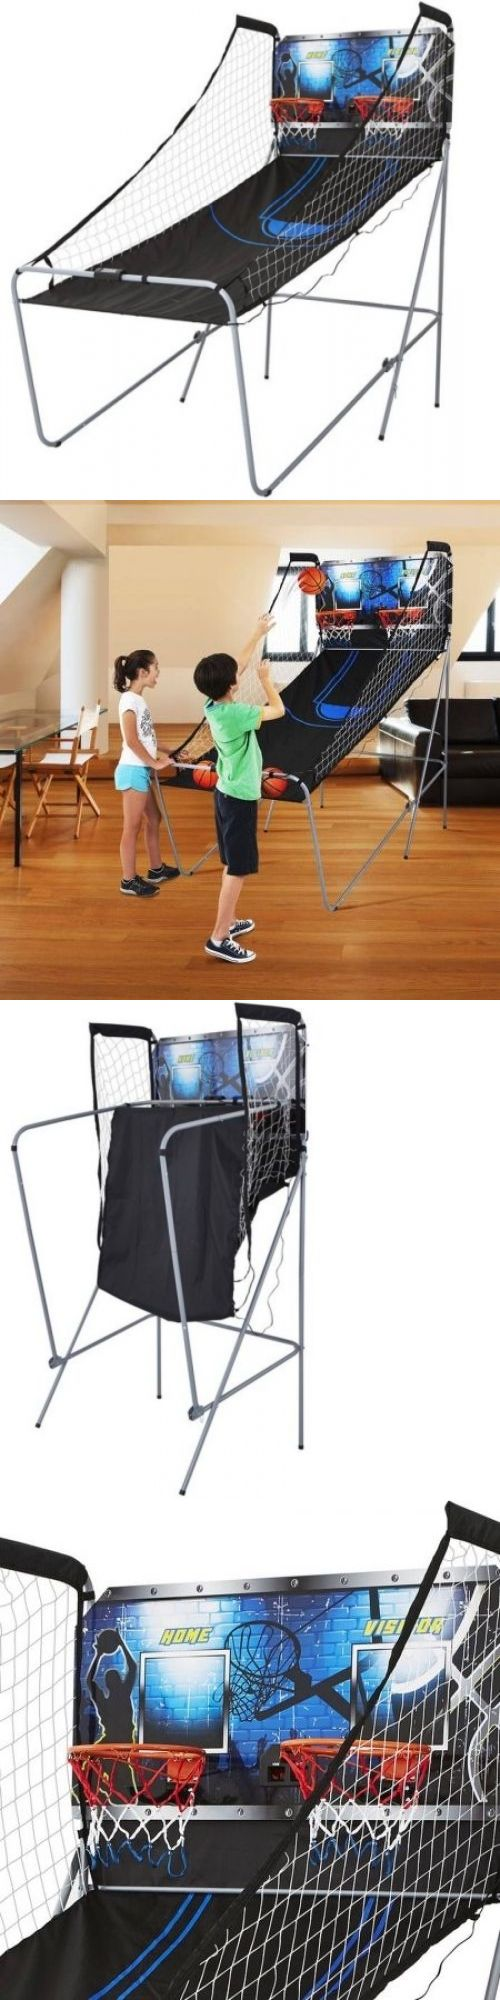 Other Indoor Games 36278: Md Sports 2-Player Arcade Basketball Game With 8 Game Options BUY IT NOW ONLY: $67.81